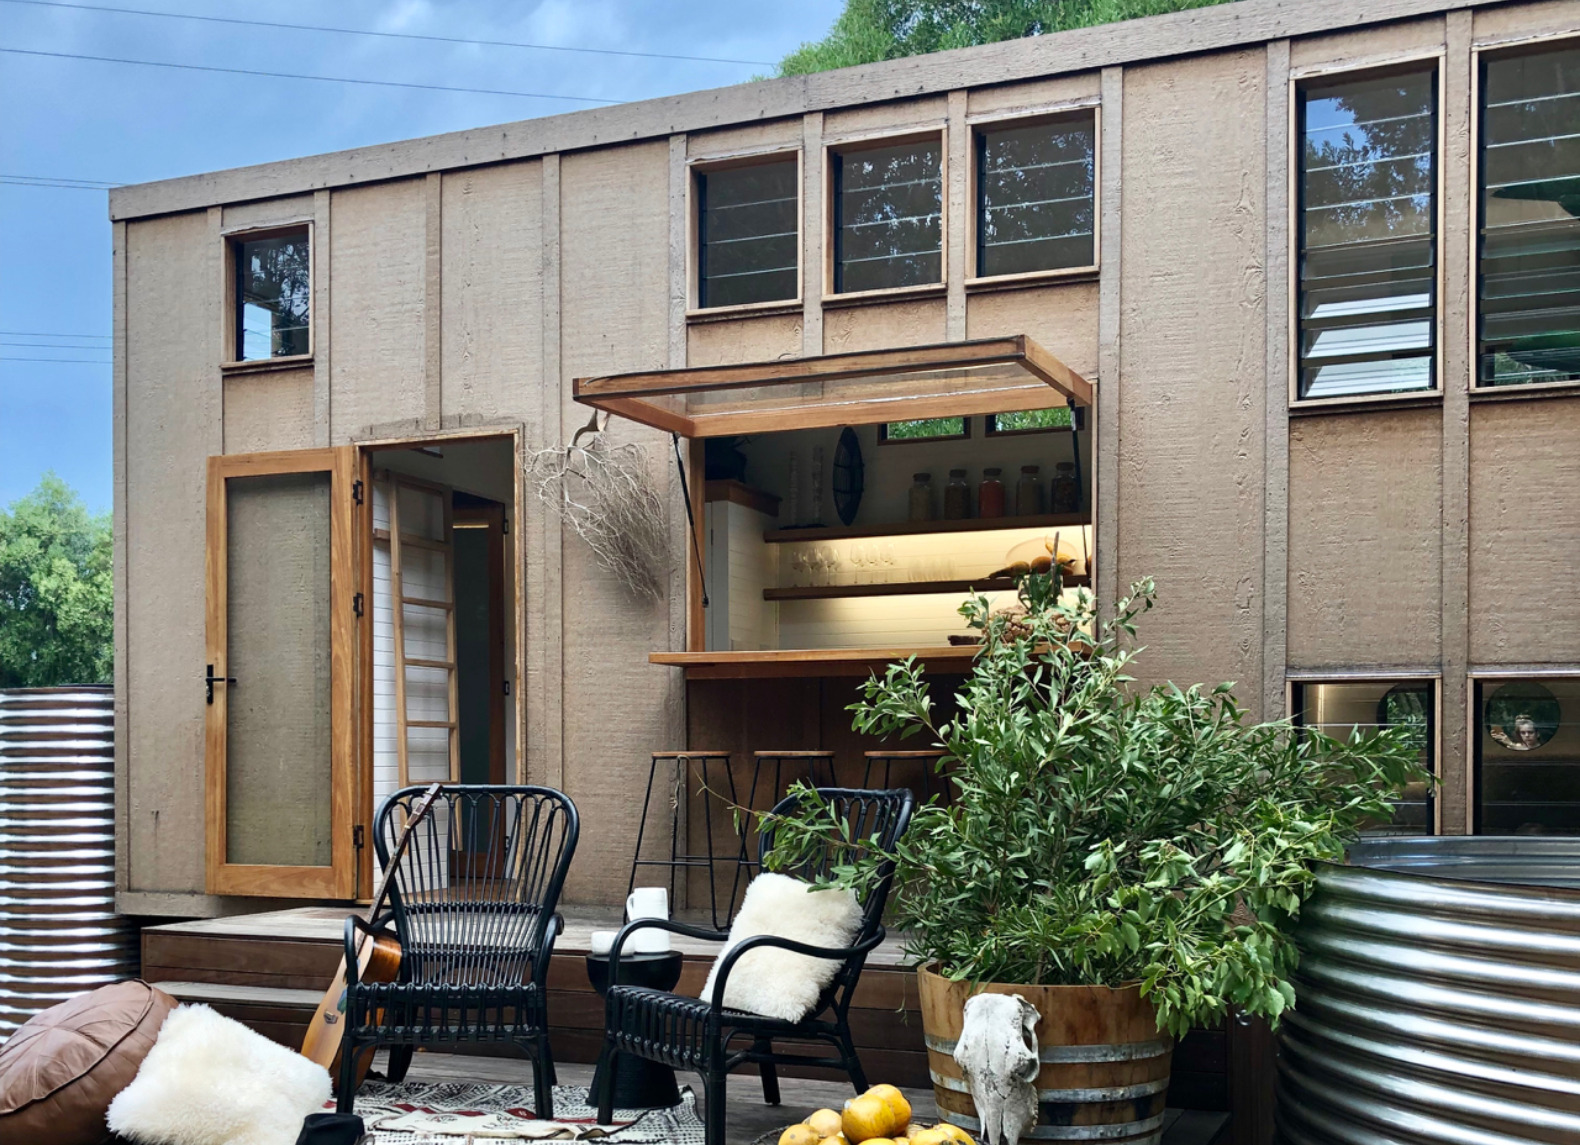 Stunning Boho Style Tiny House Comes With Open Air Bar